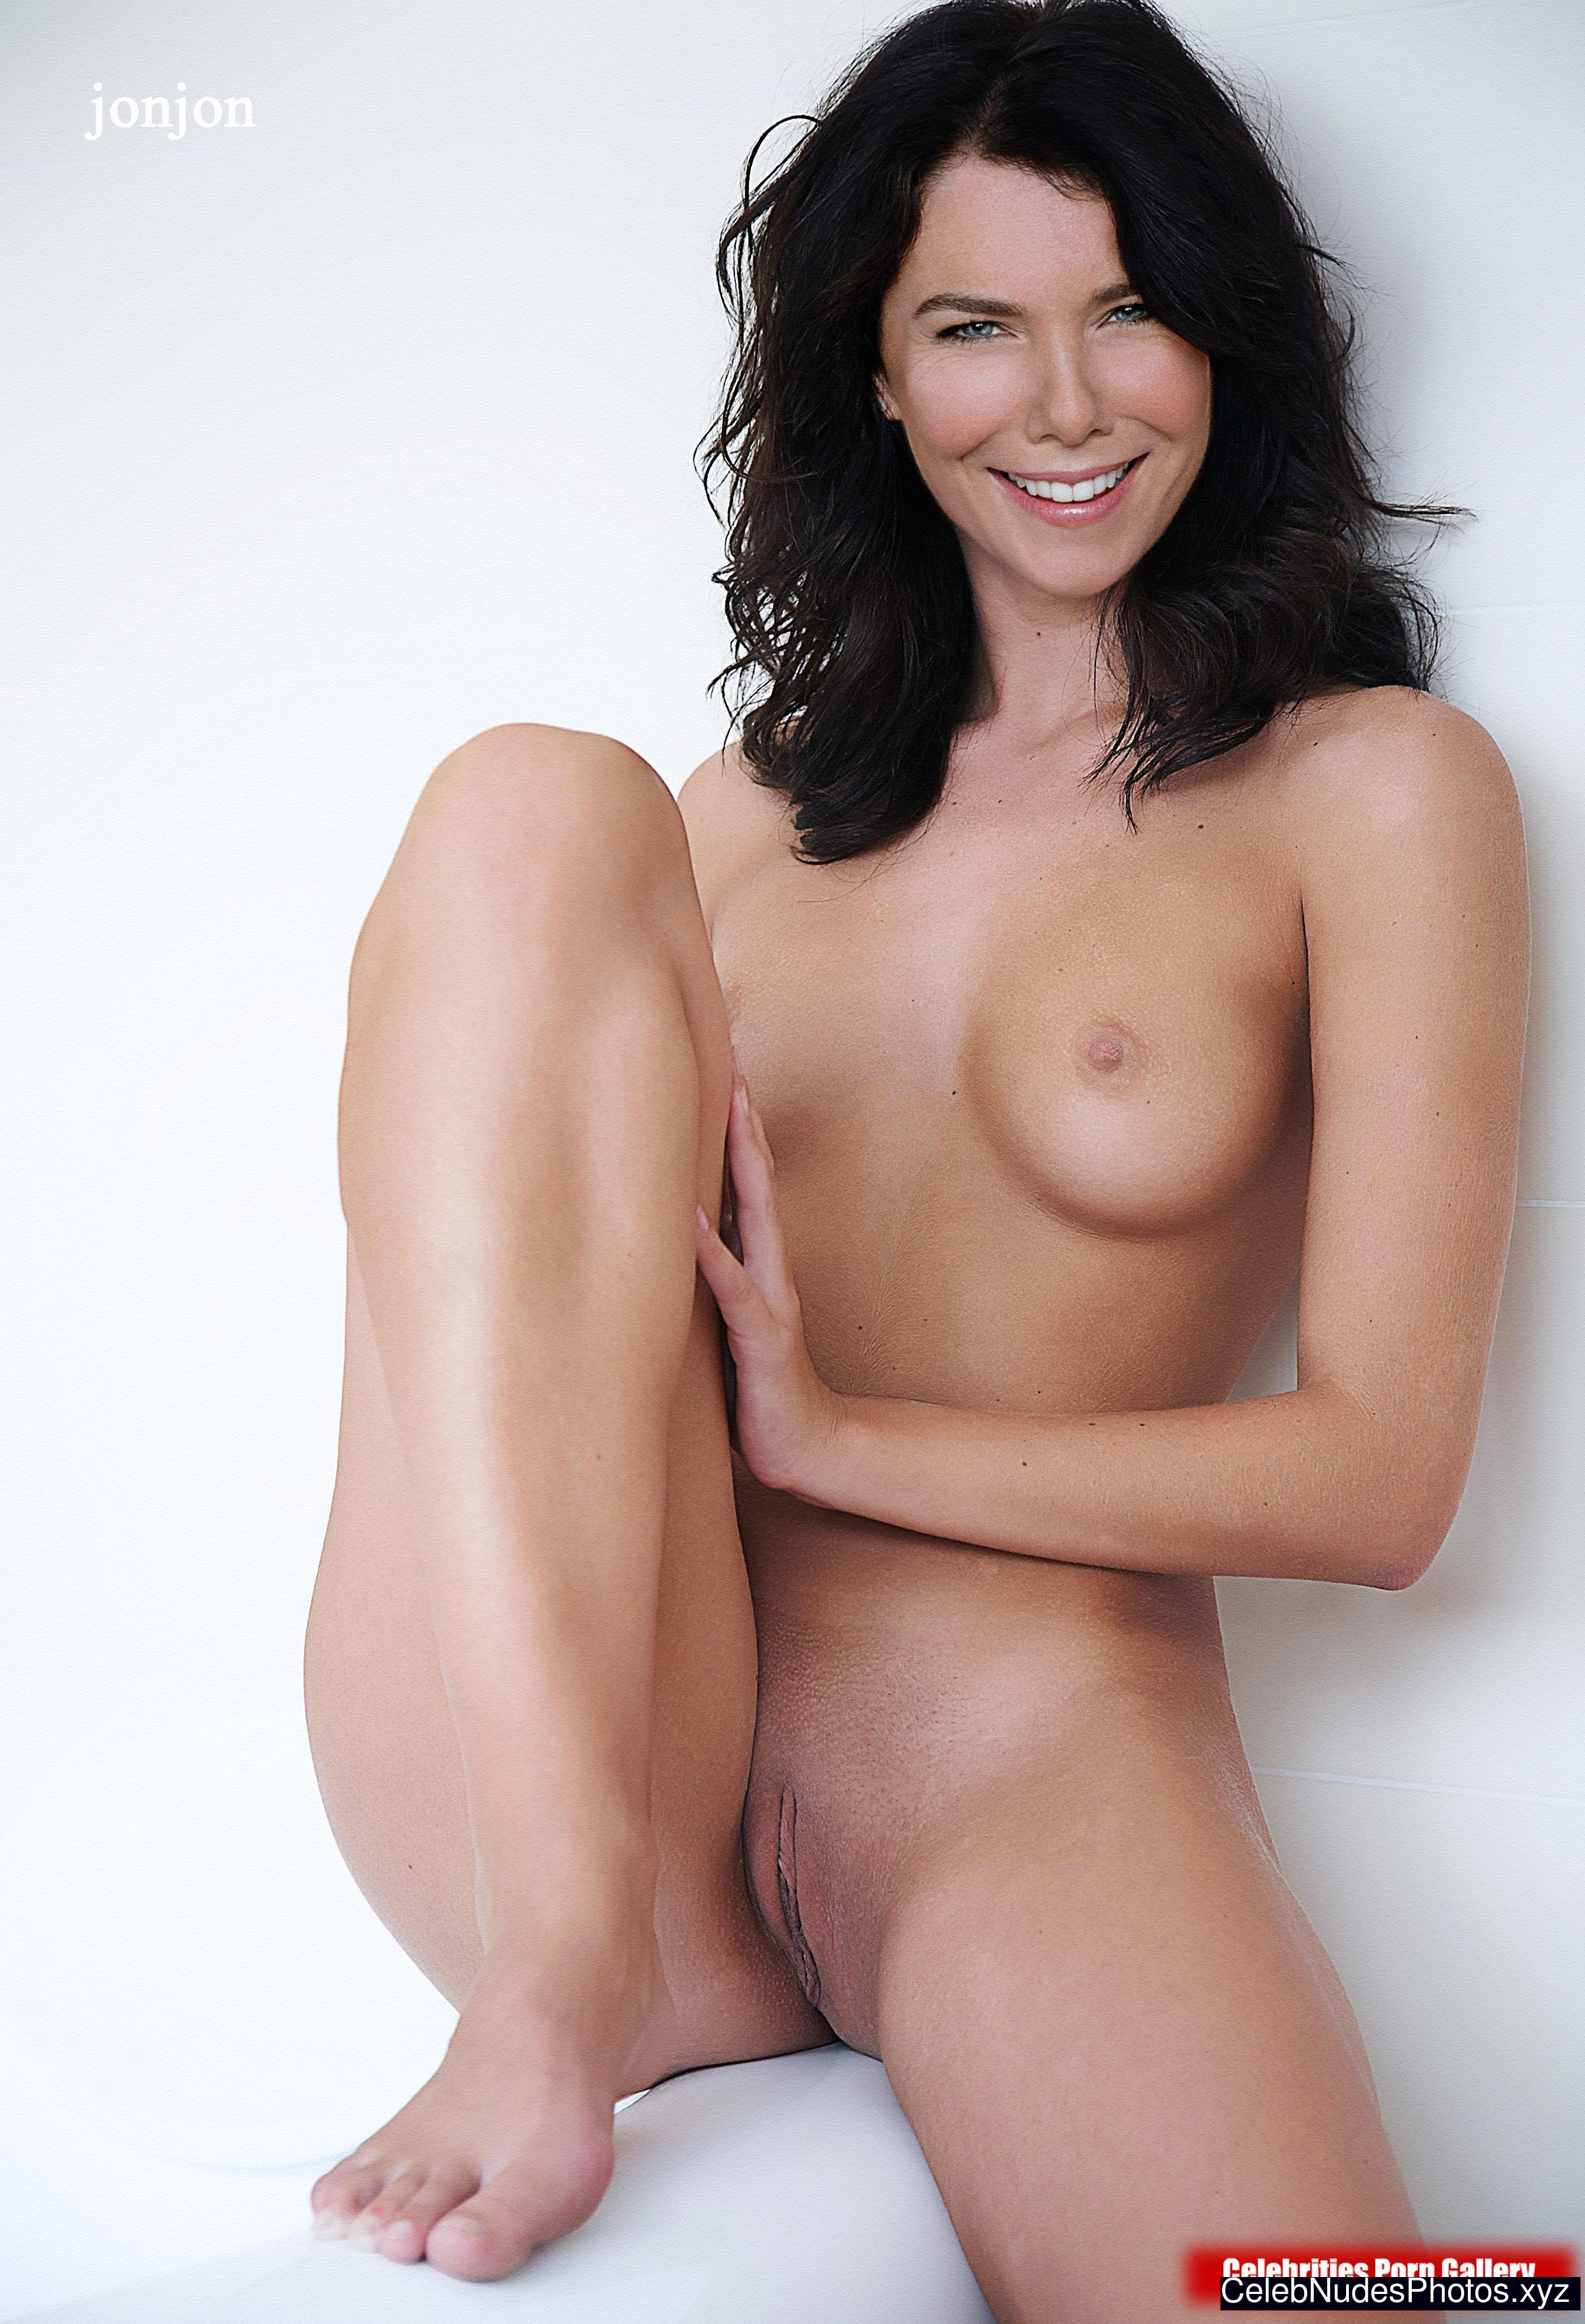 Cecilia Galliano Naked Pretty celebs naked galleries - page 3 of 17 - celeb nudes photos